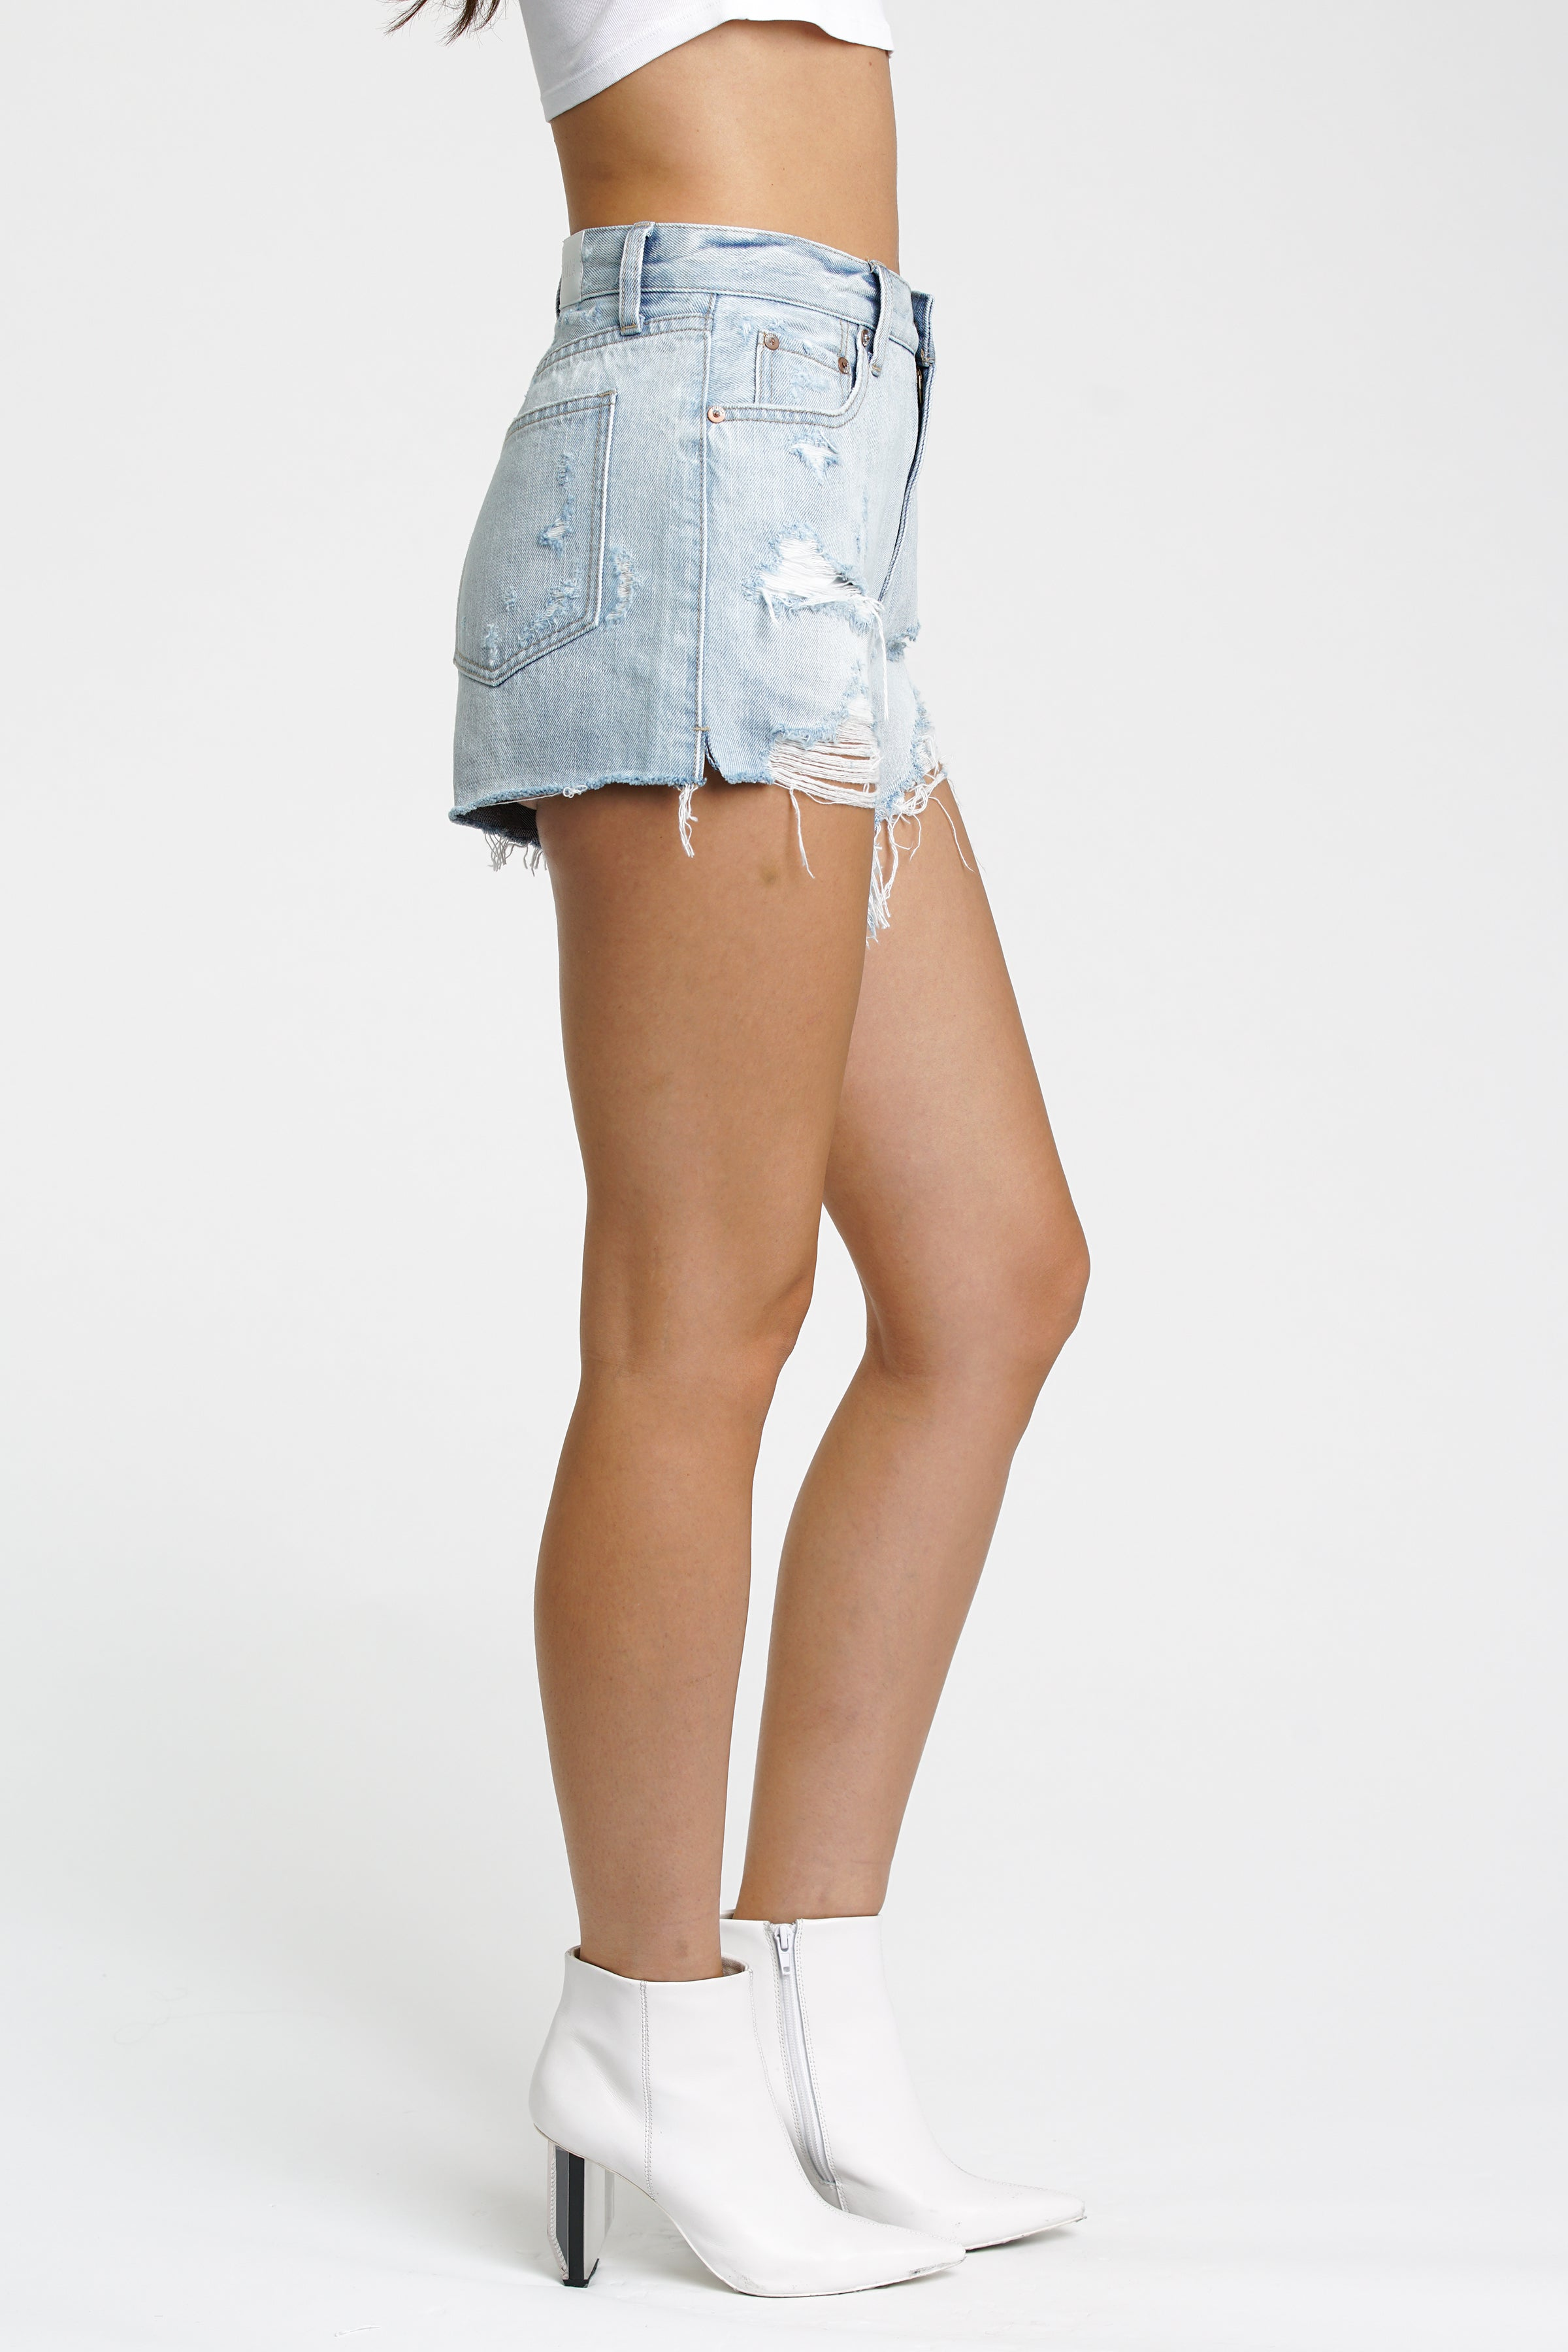 Nova Relaxed High Rise Cut Off - Chaser